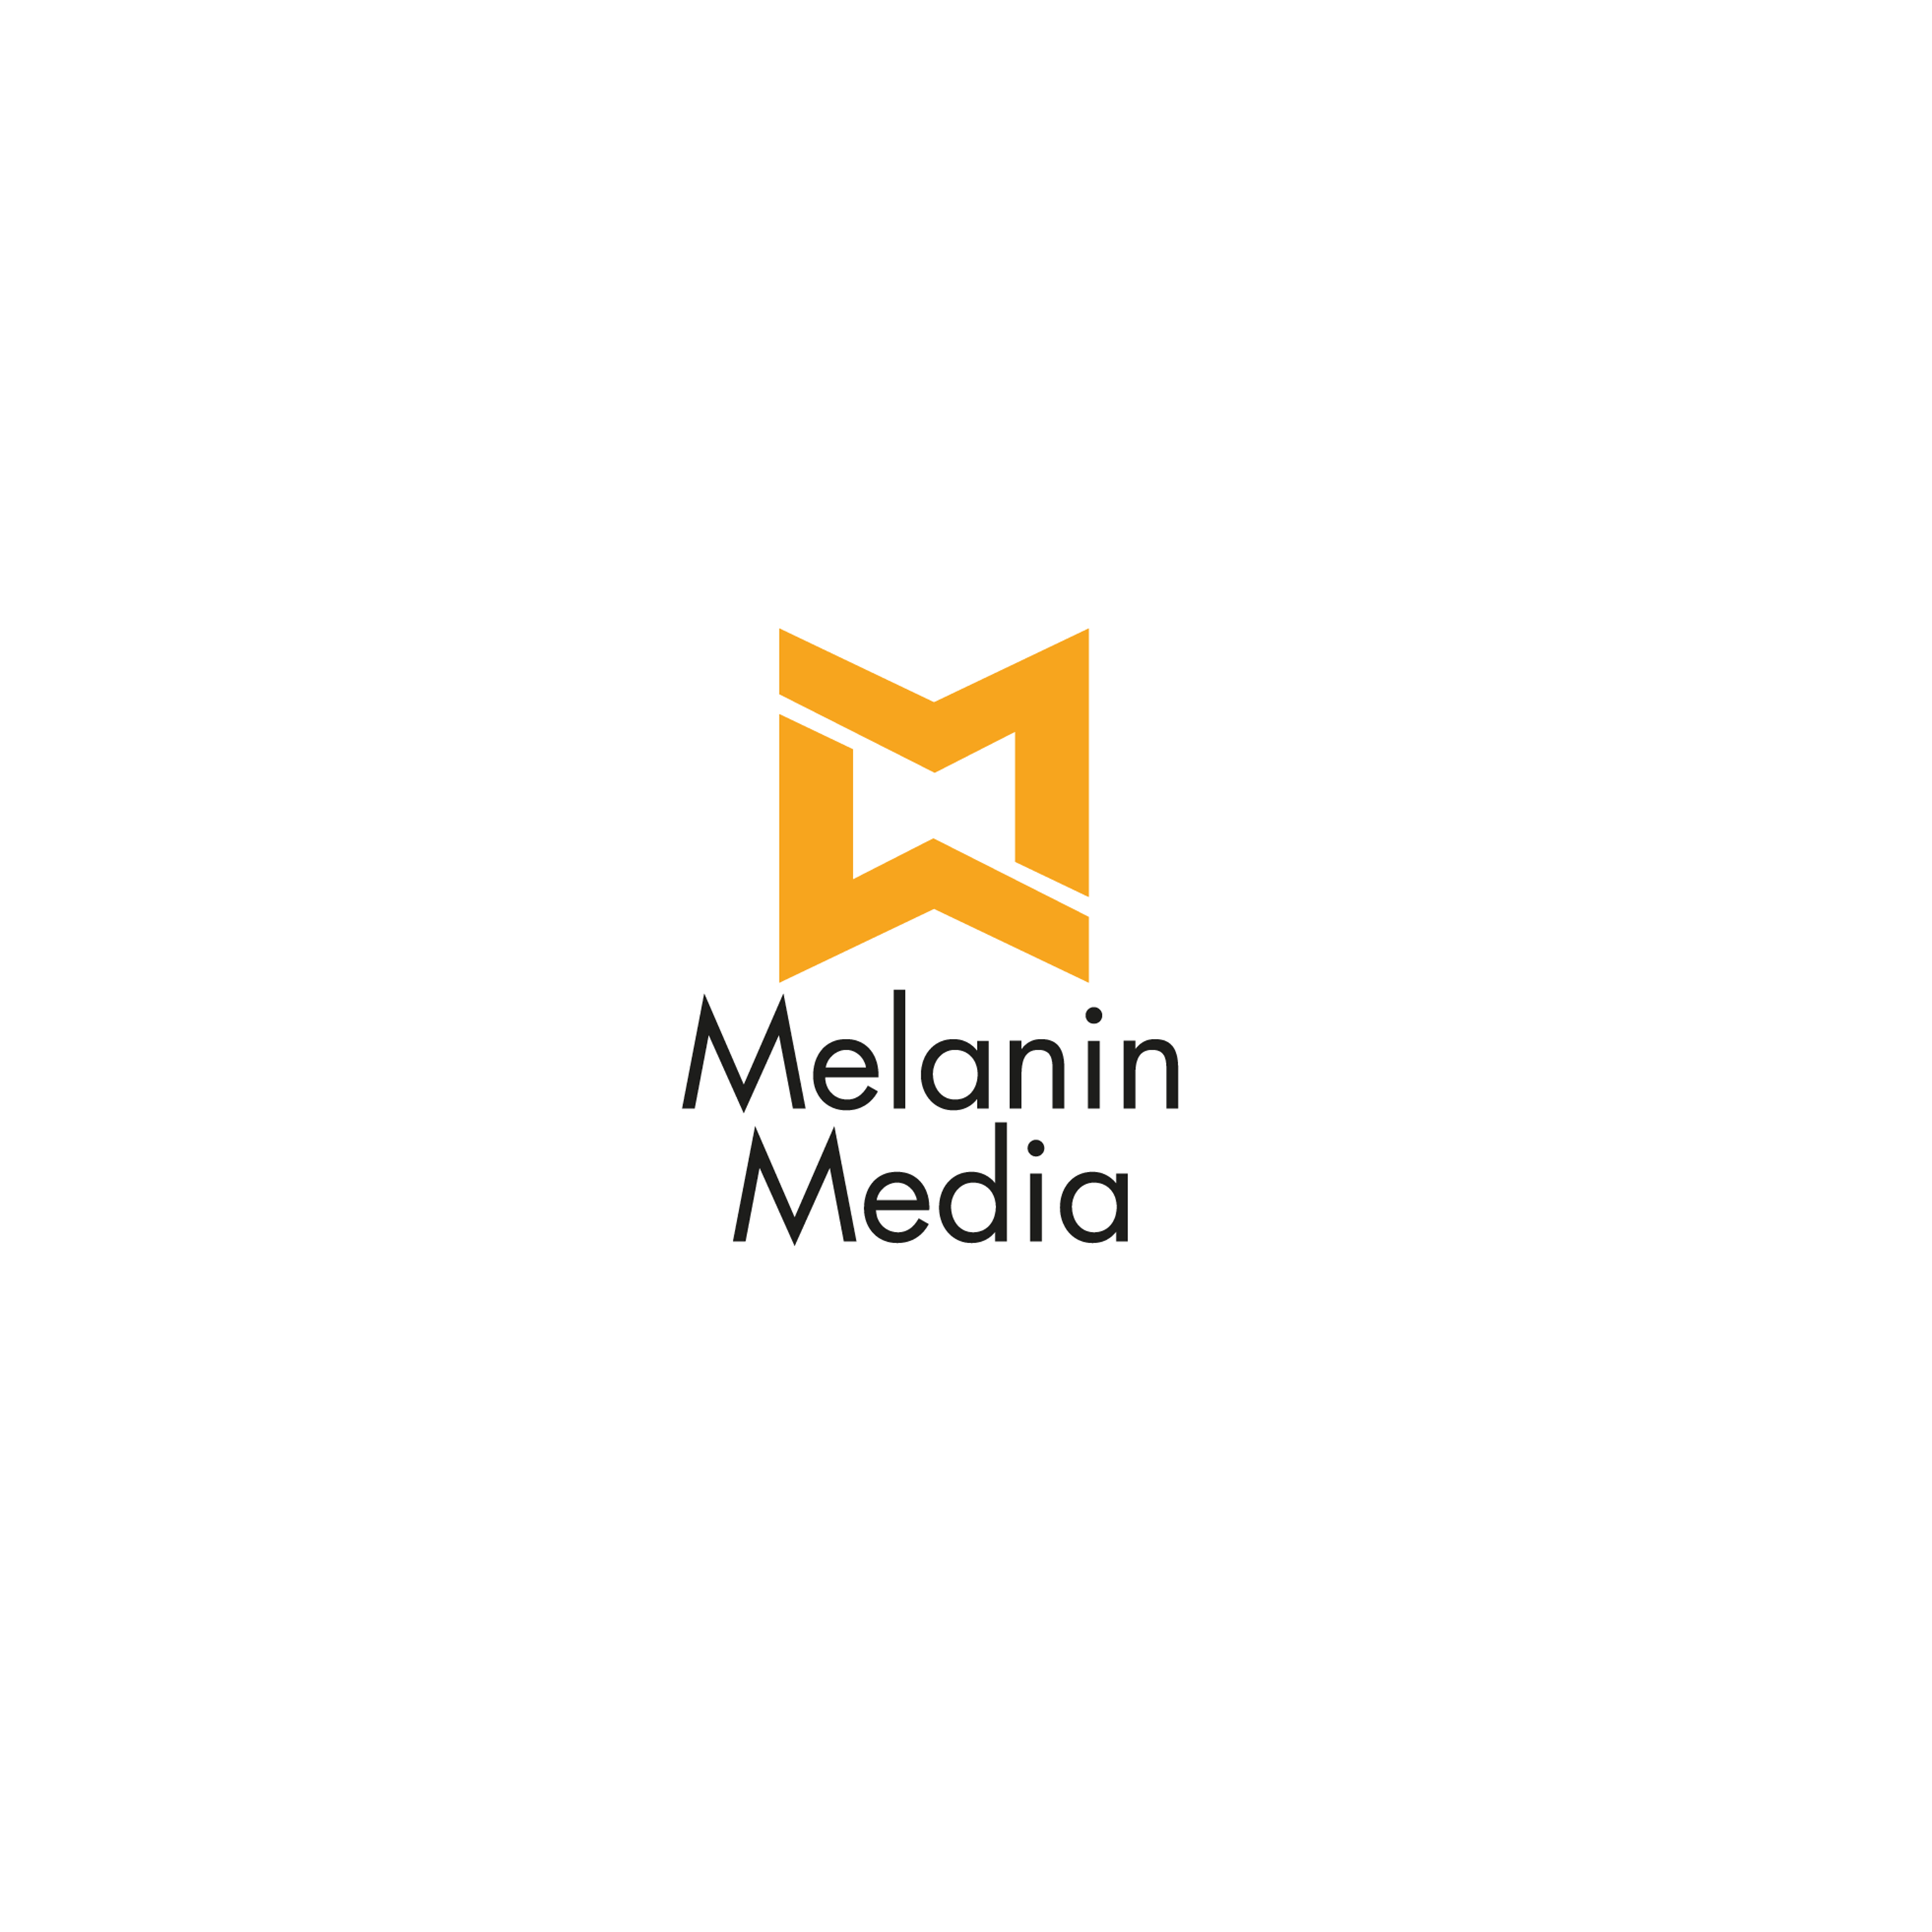 Melanin Media Logo Design